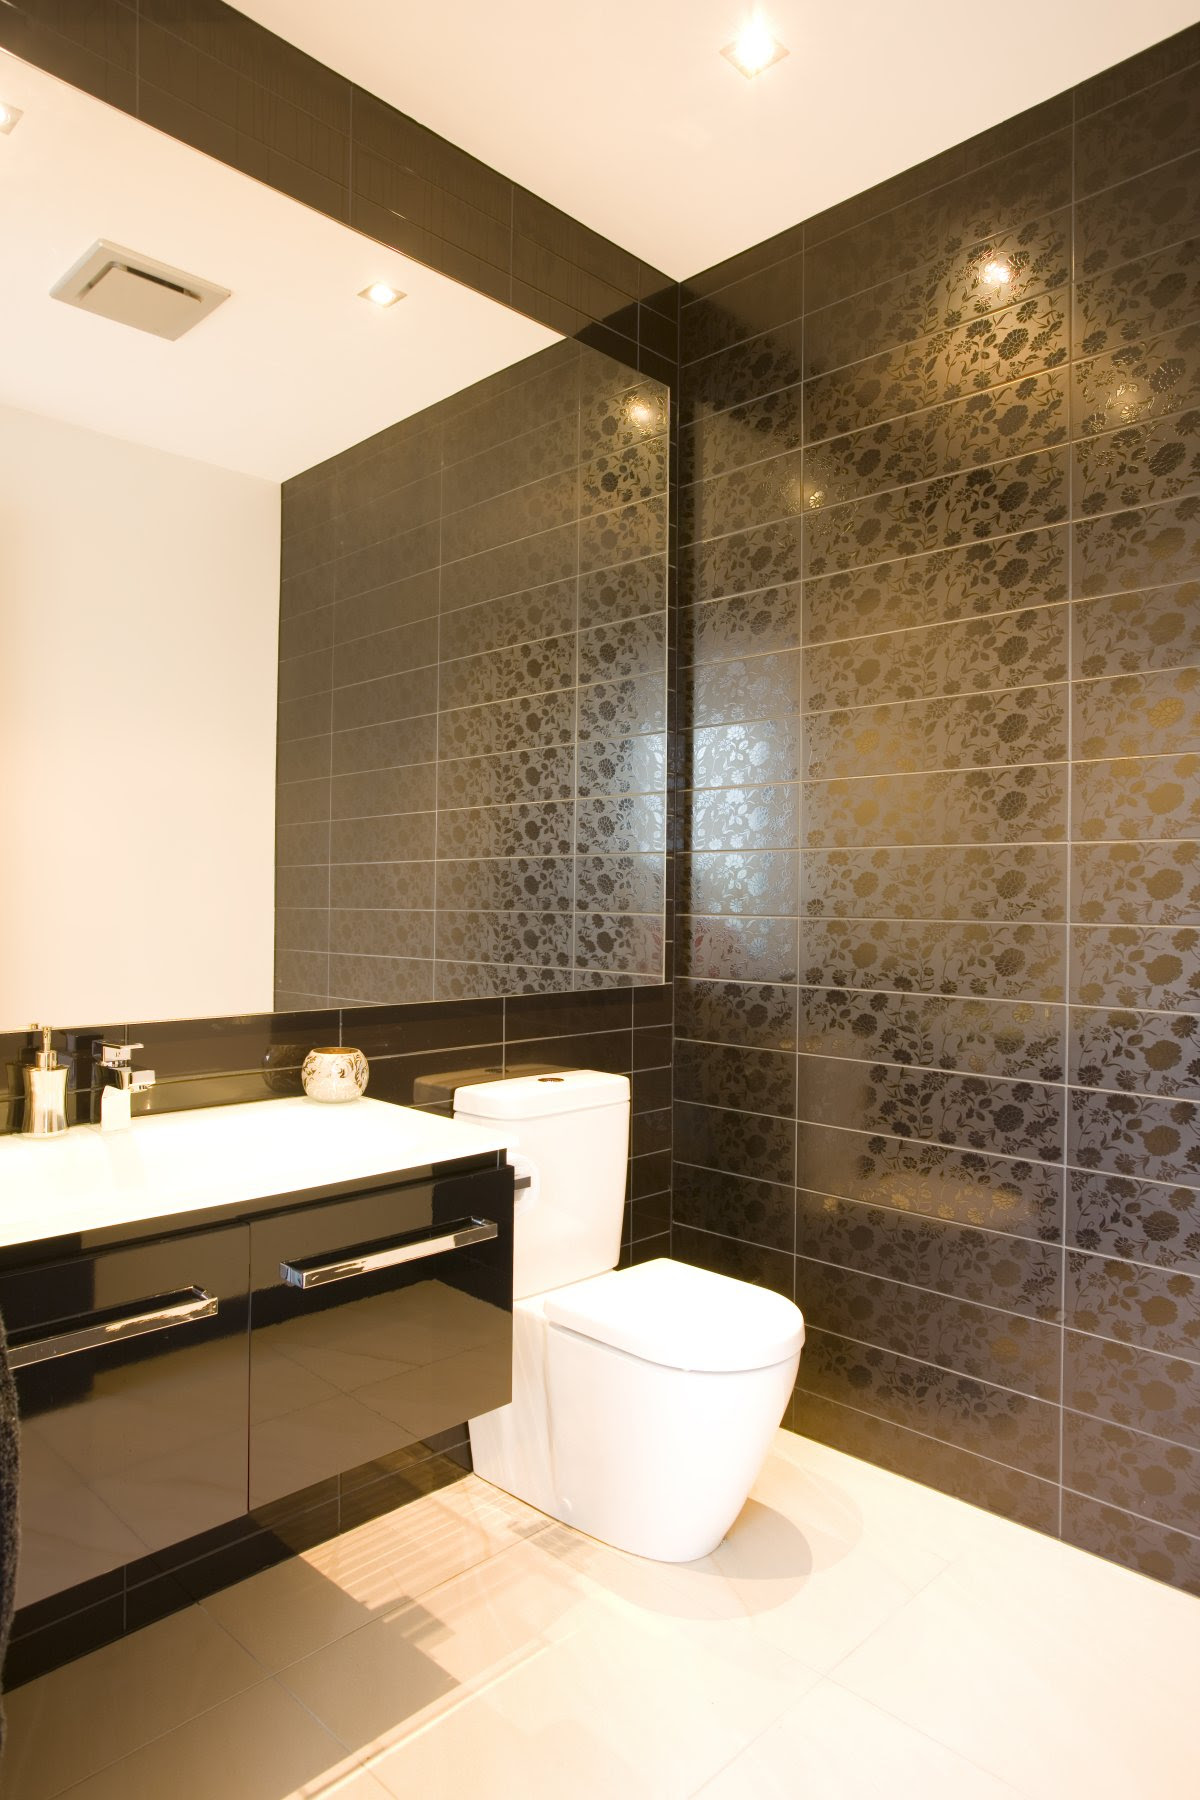 25 Modern Luxury Bathrooms Designs - The WoW Style